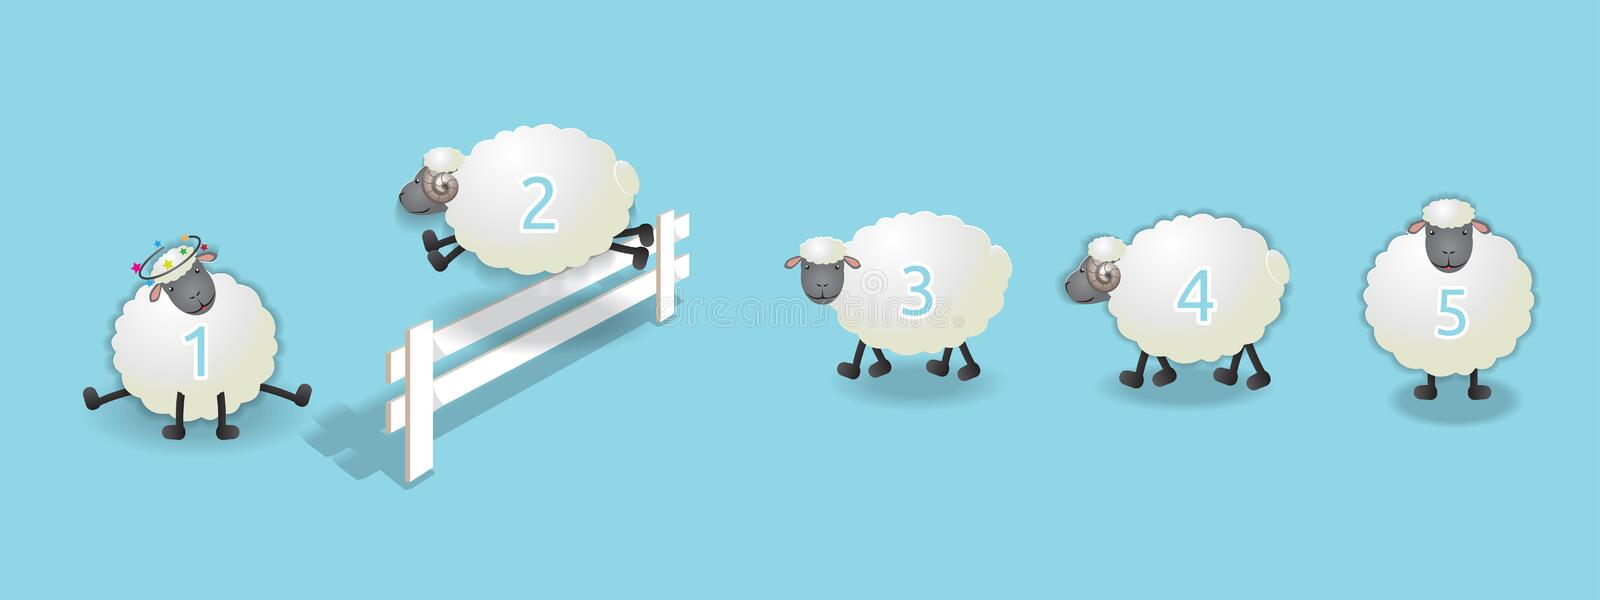 Counting sheep queue stock illustration